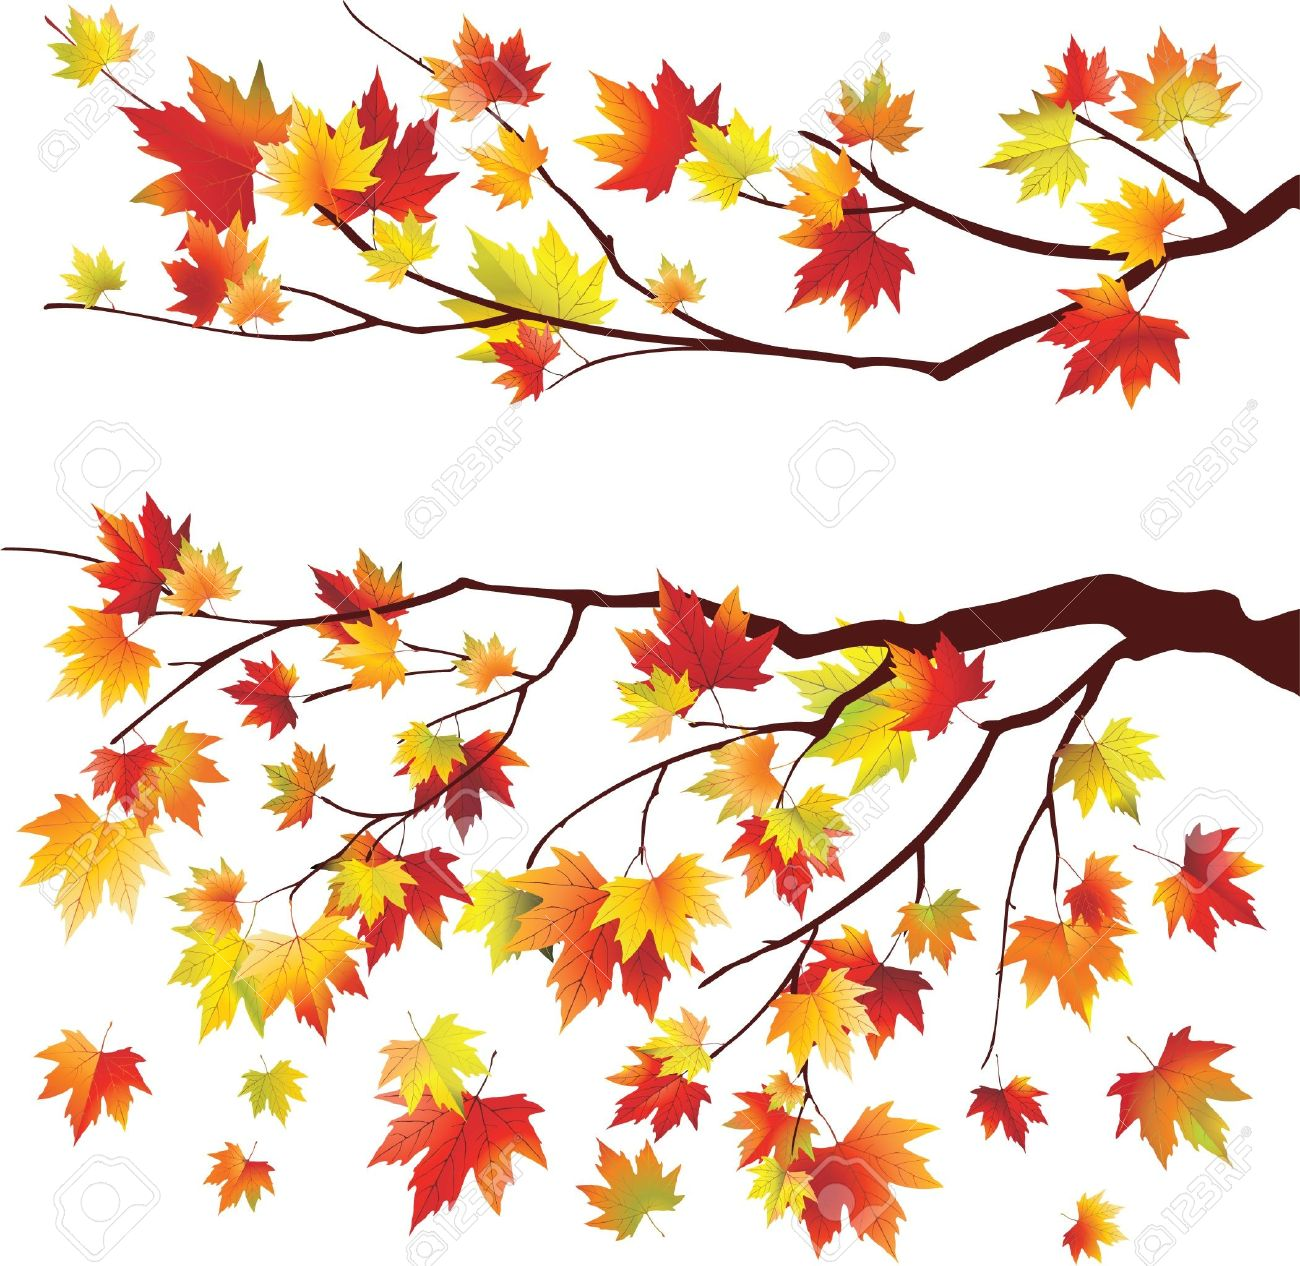 autumn maple tree branches on white background royalty free cliparts rh 123rf com